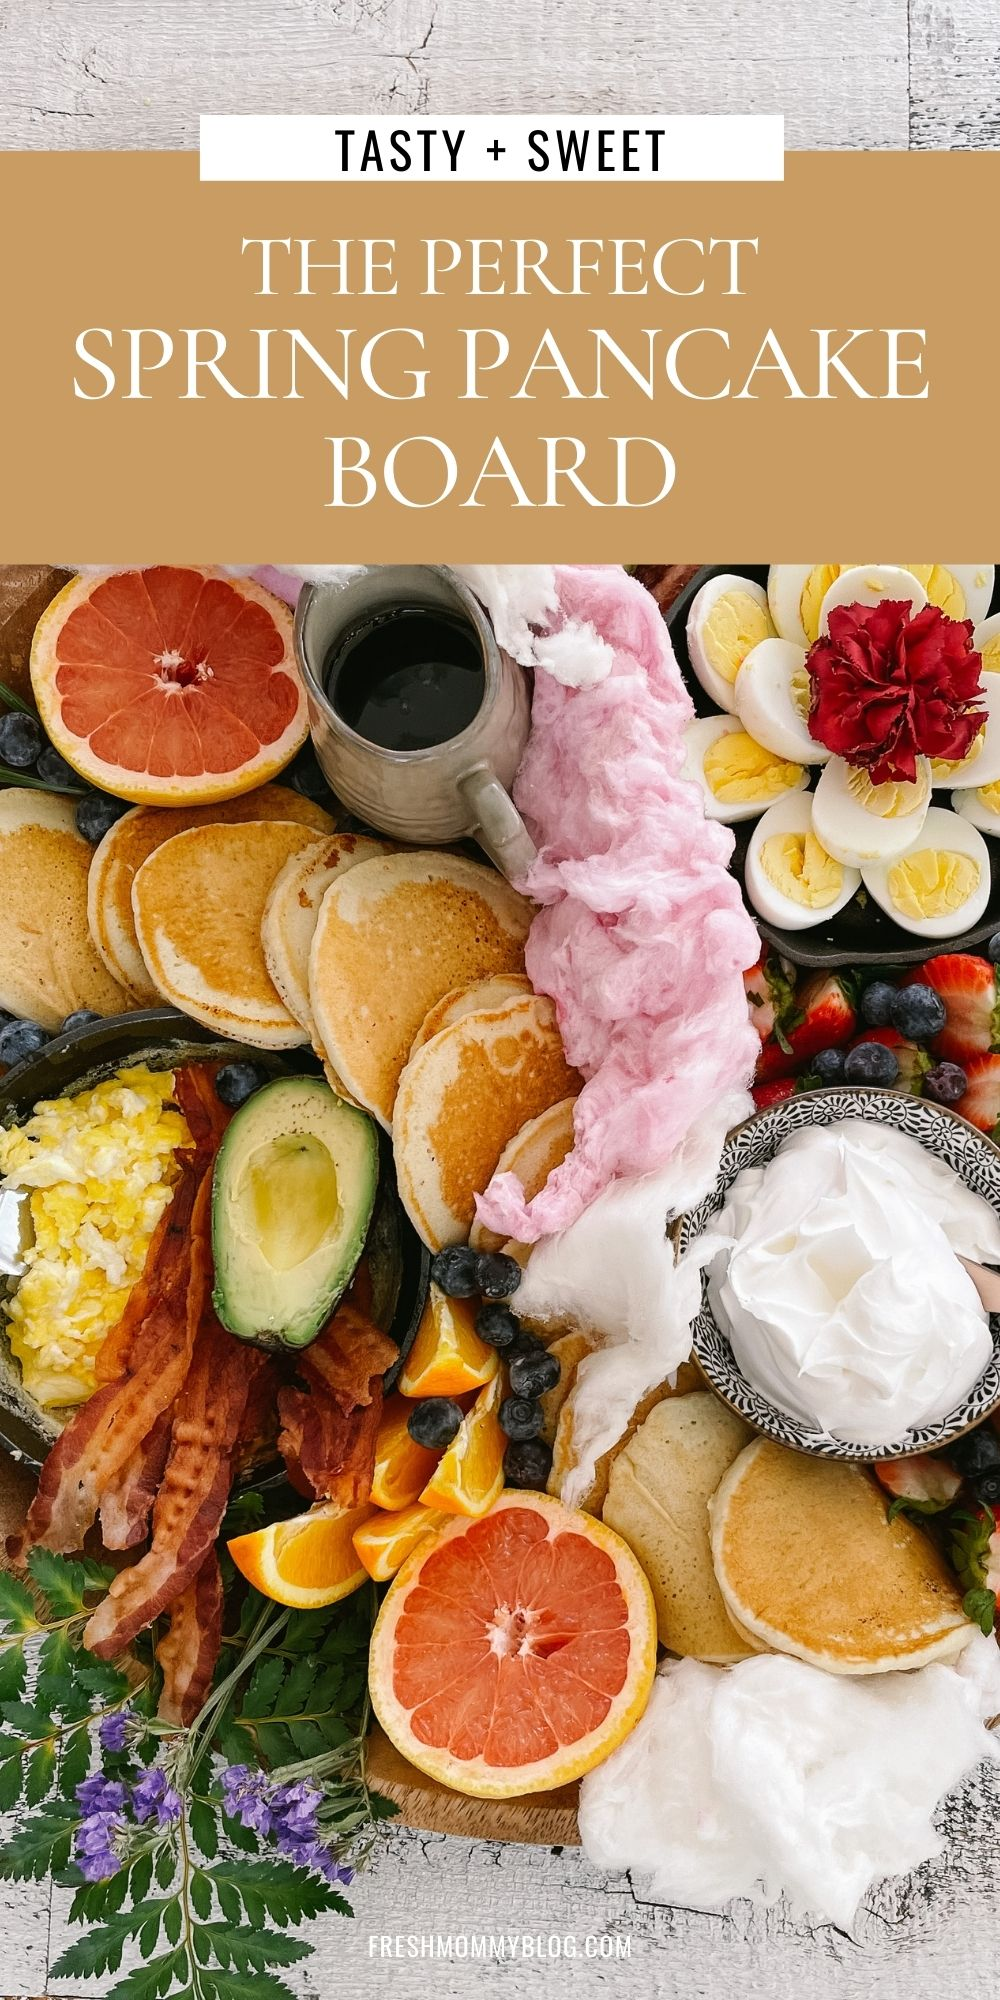 How to Make a Pancake Board That Looks as Delicious as It Tastes. The best Spring Breakfast Board |Pancake Board by popular Florida lifestyle blog, Fresh Mommy Blog: Pinterest image of a pancake board with pancakes, grapefruit, blueberries, avocado, deviled eggs, bacon, scrambled eggs, and strawberries.